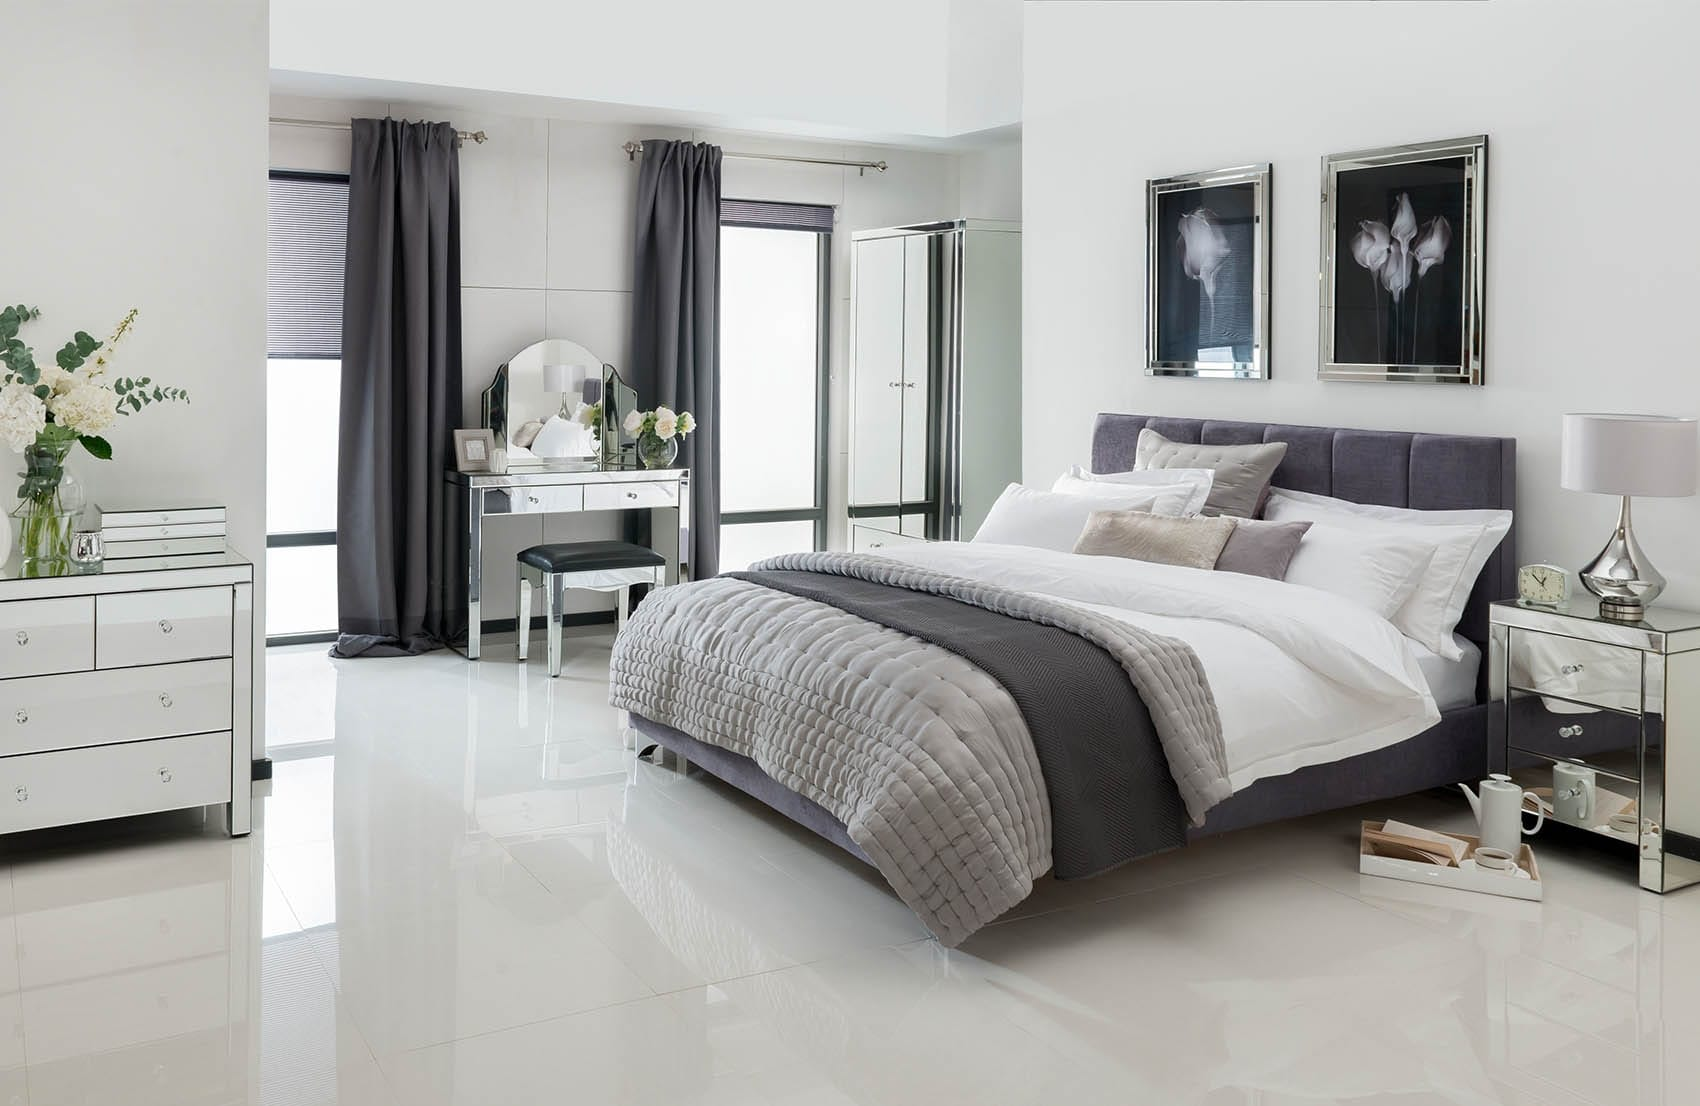 Mirrored Furniture A Trend Not A Fashion Movement Homes Direct